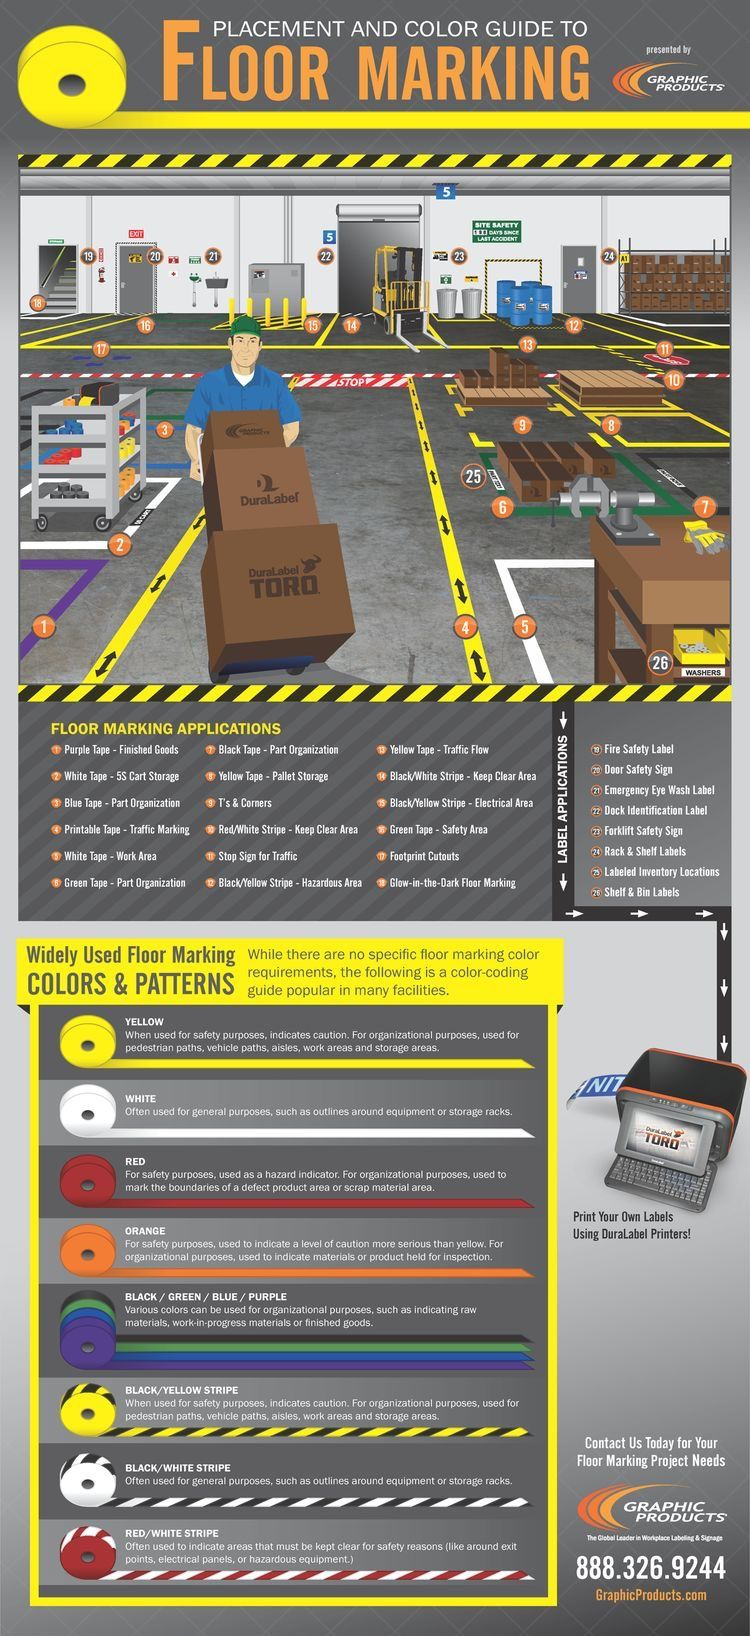 Quality and Safety Visual management, Industrial